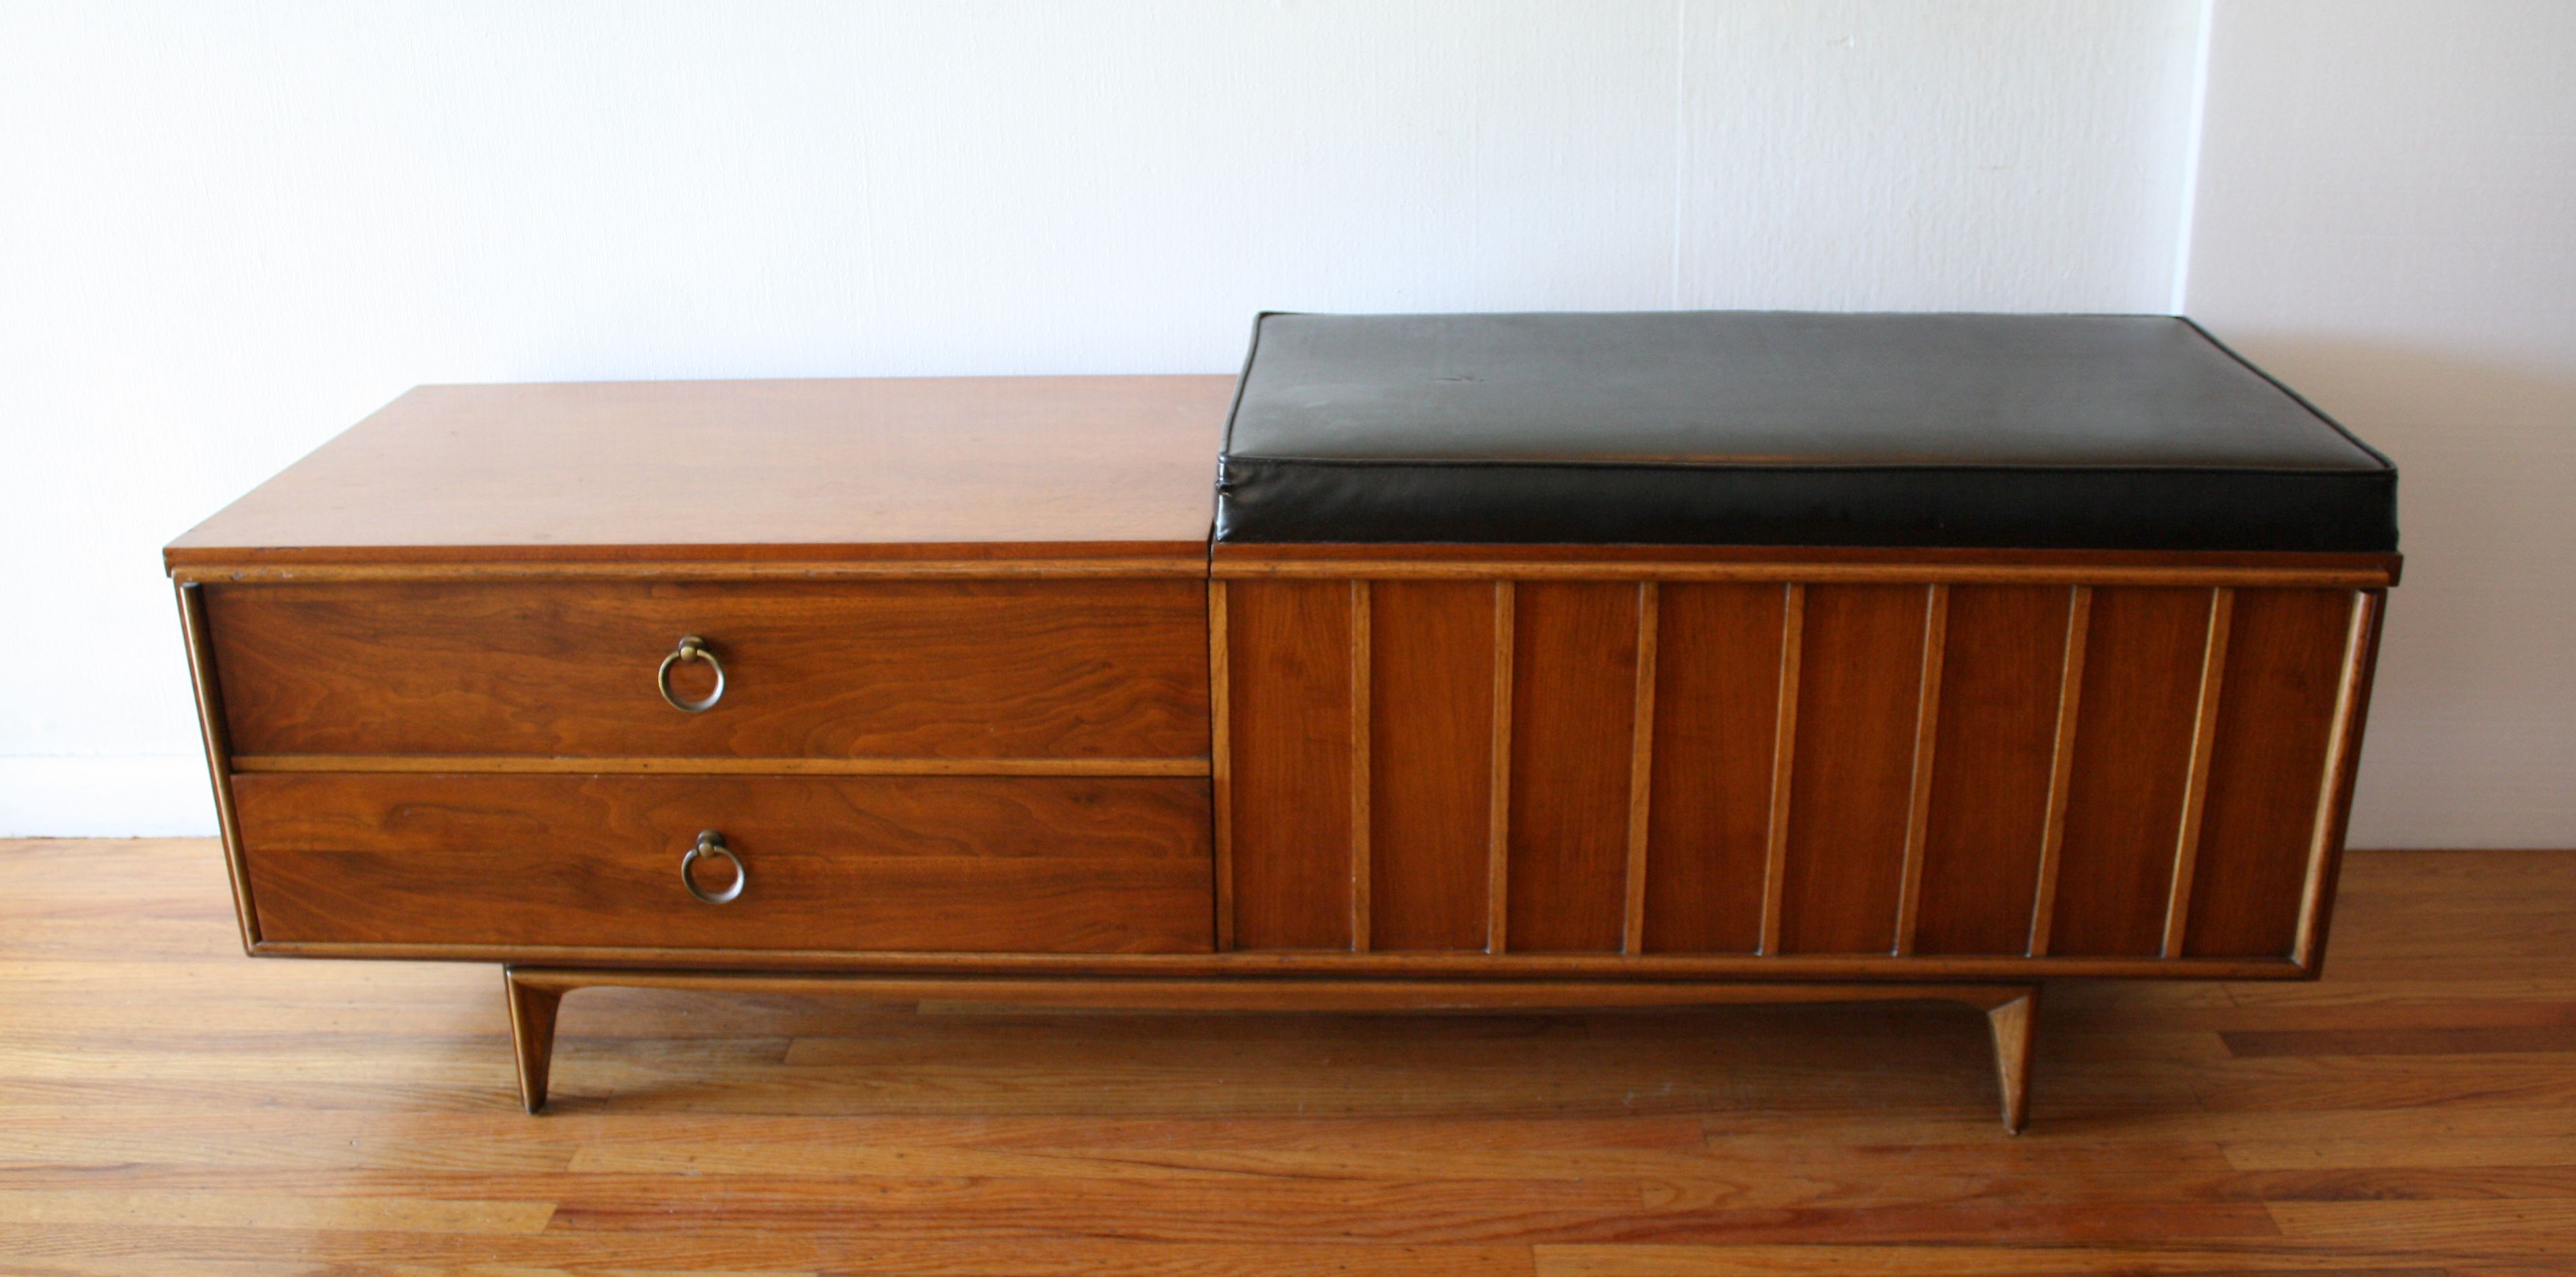 Mid Century Modern Lane Cedar Chest Bench With Dovetailed Drawers And An  Upholstered Seat That Lifts